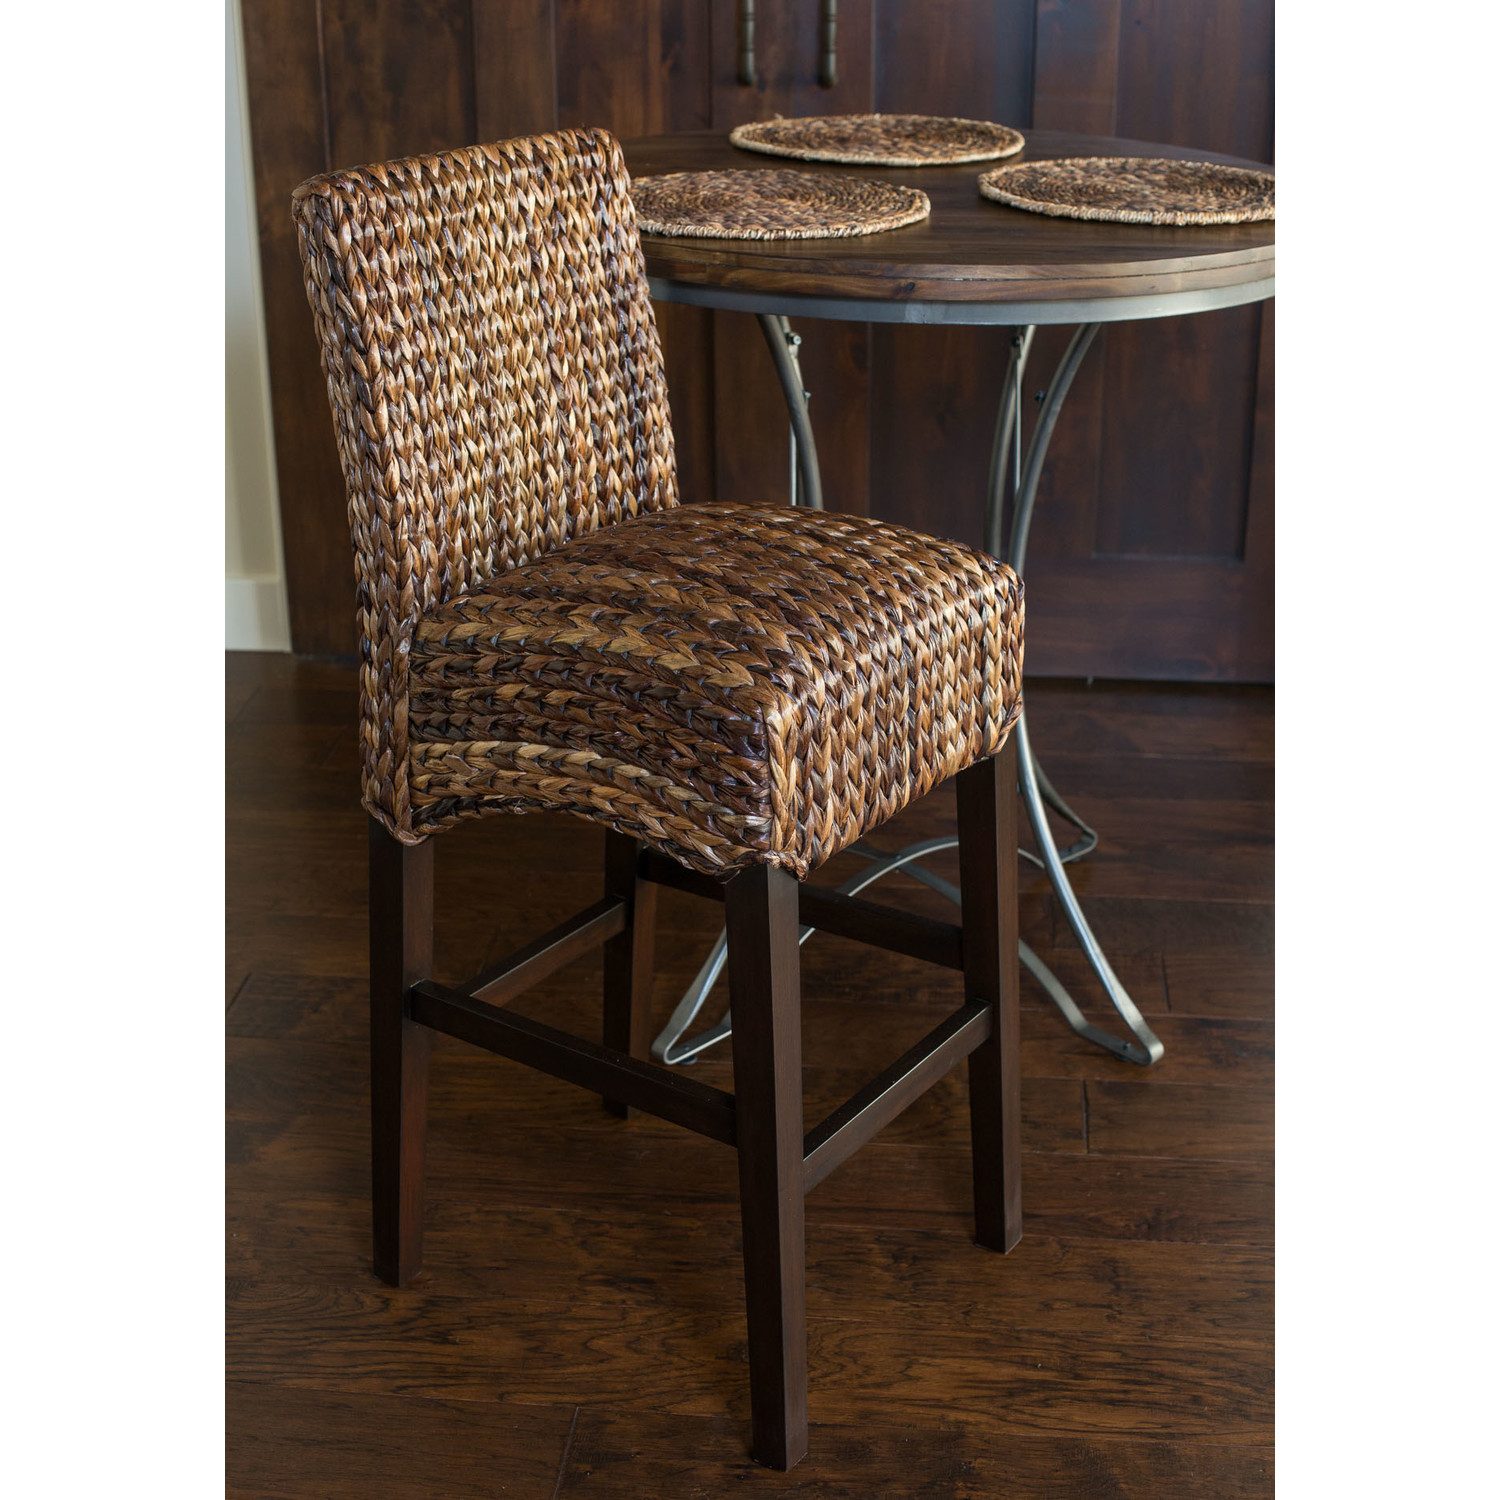 Seagrass Dining Room Chairs Unique Seagrass Counter Stool Homesfeed